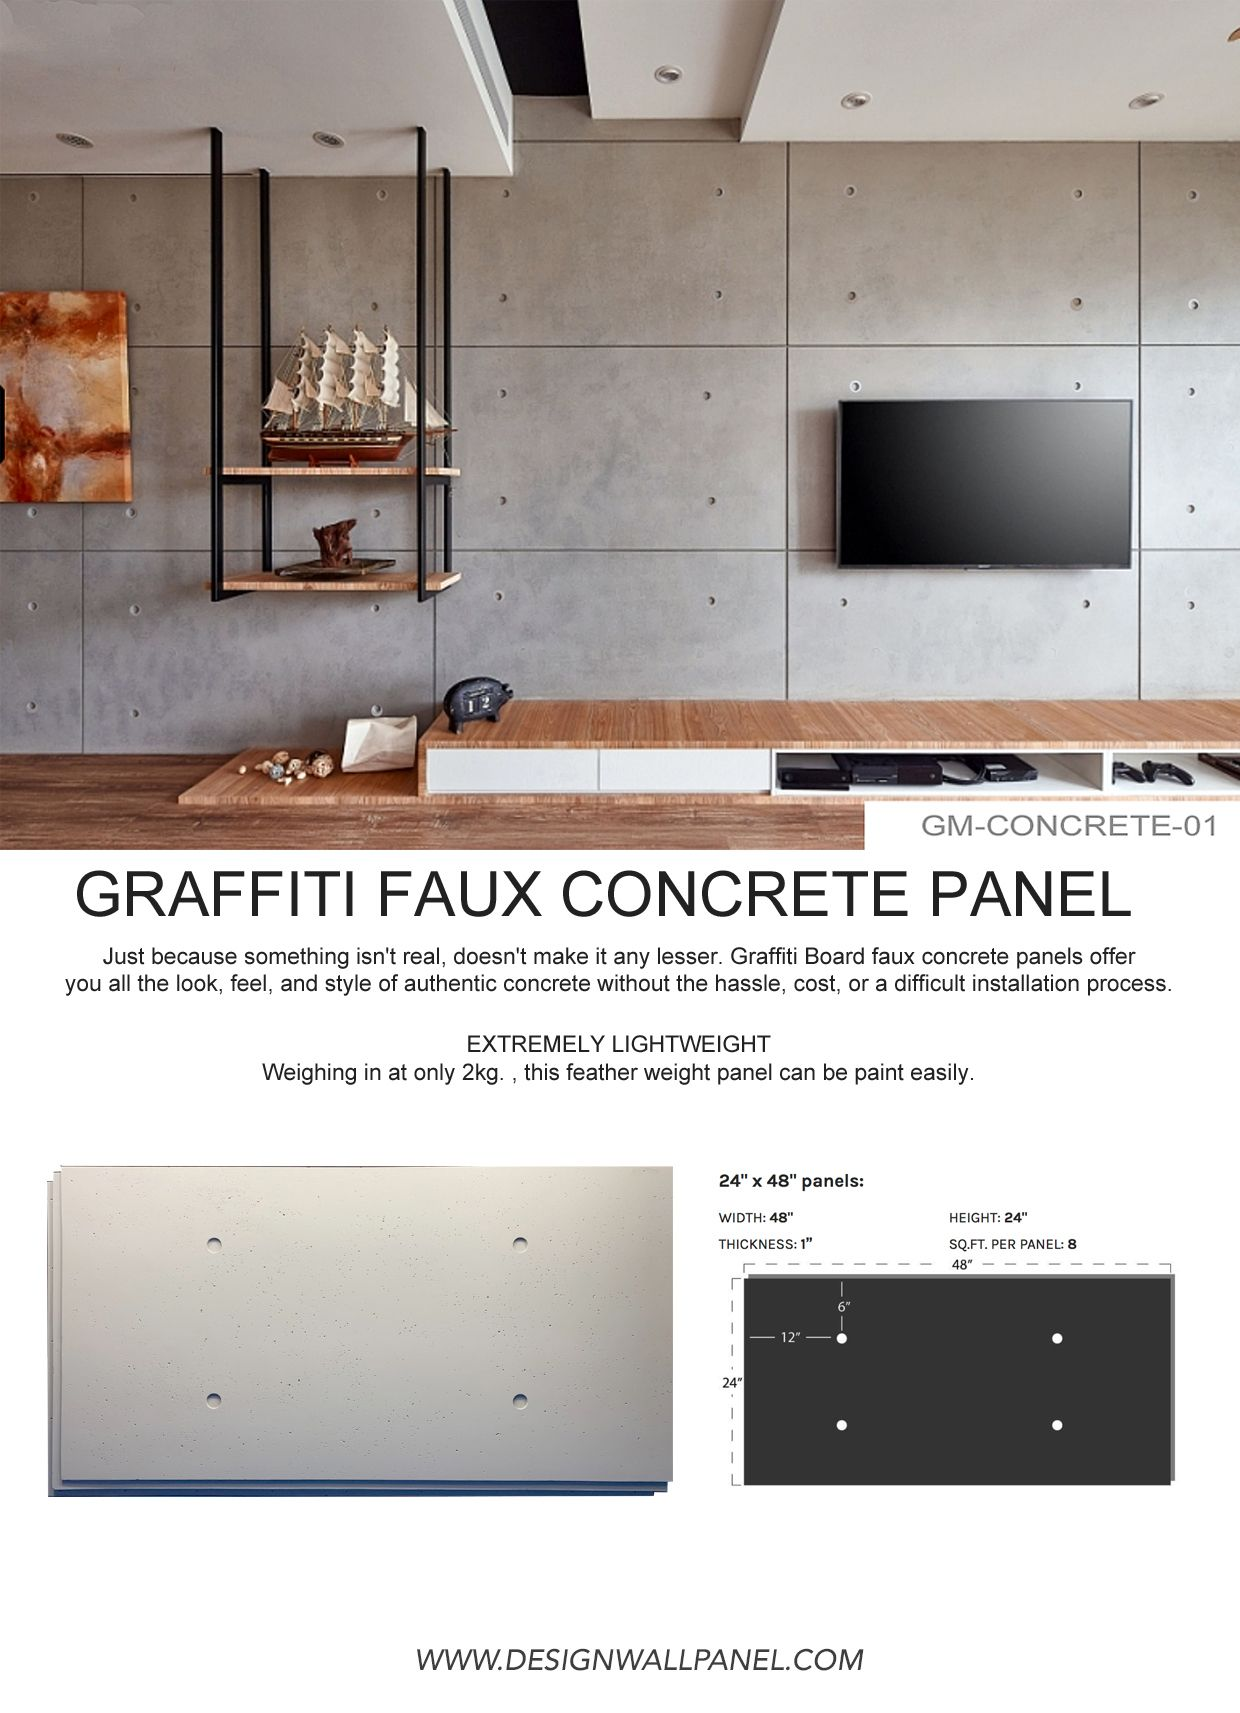 Faux Concrete Panel In 2020 Brick Wall Paneling Faux Brick Walls Interior Wall Design